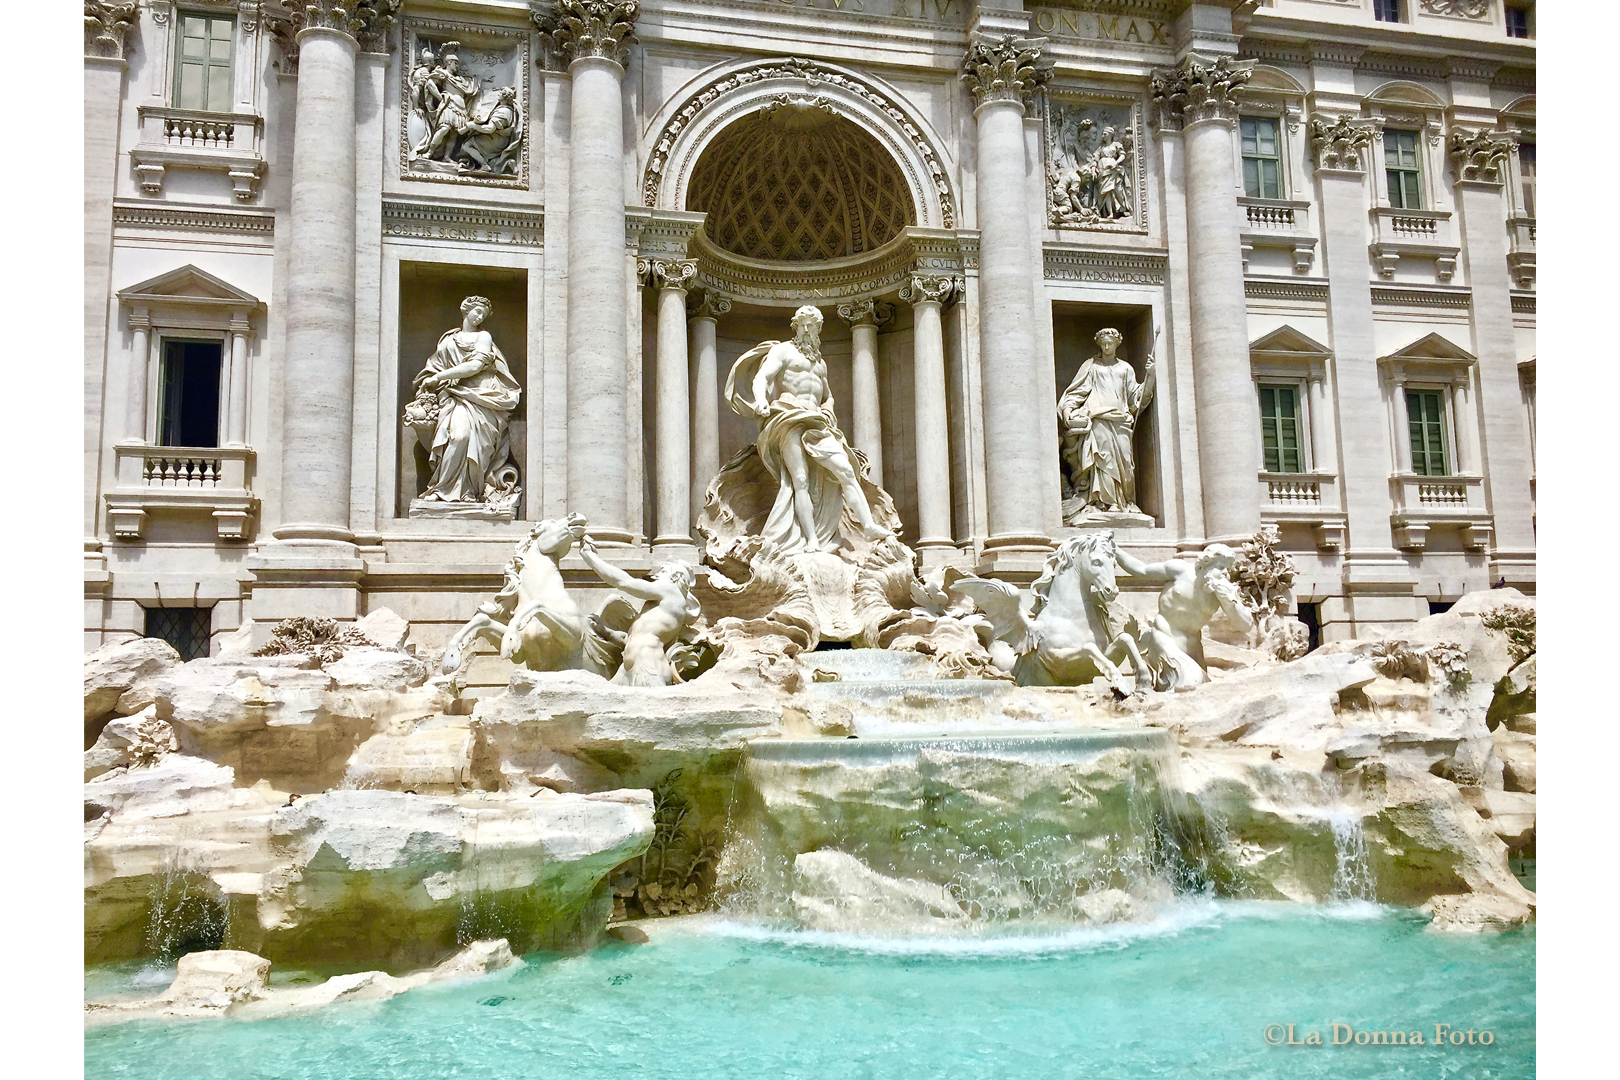 Trevi Fountain-Rome - Italian Landscape Photography - La Donna Foto Houston, TX 77007